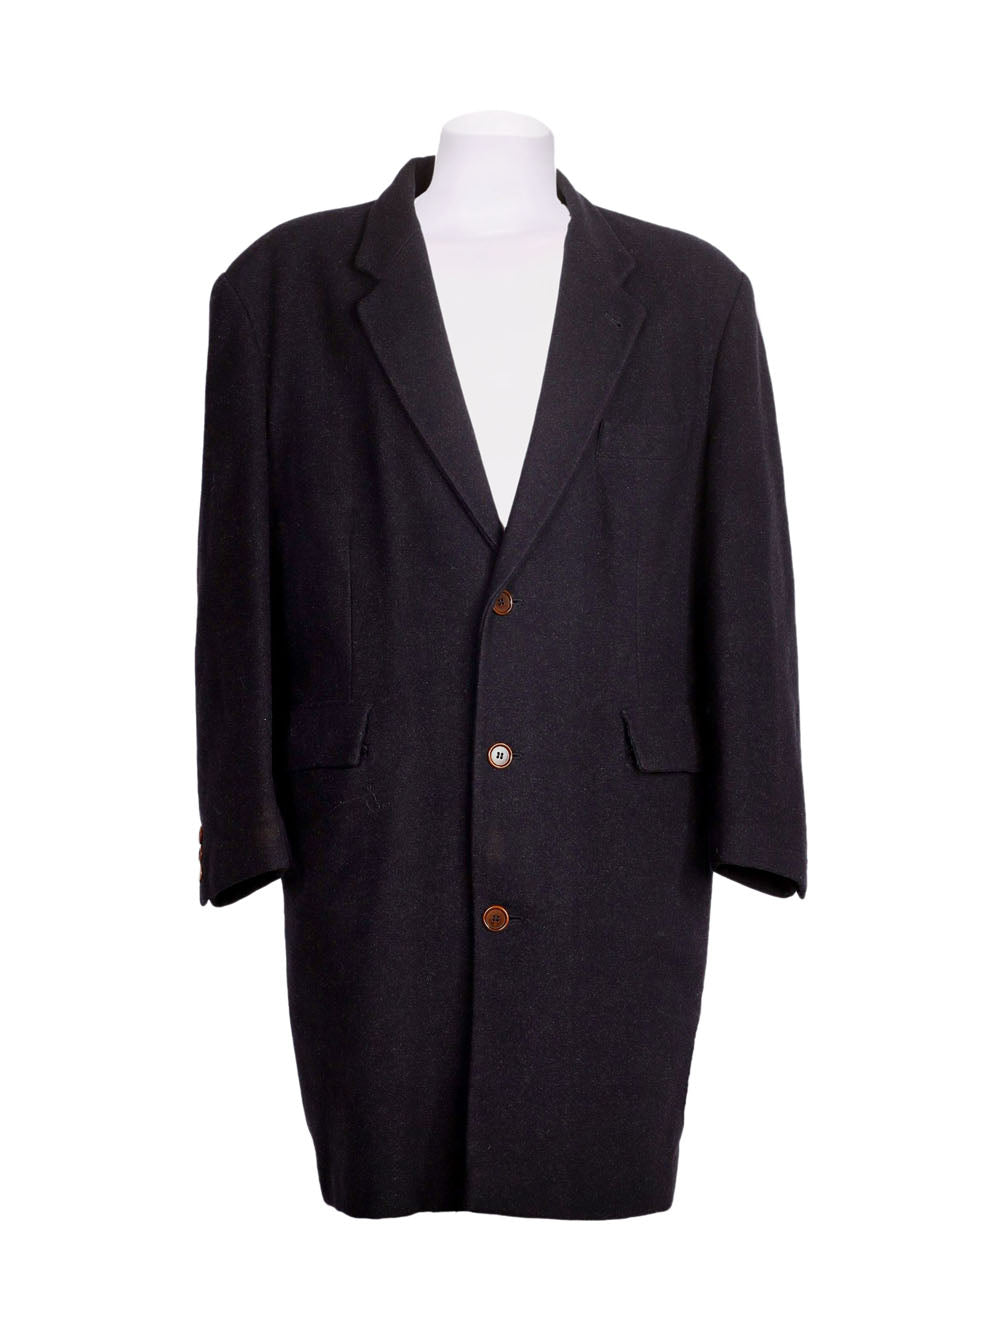 Front photo of Preloved sartoria del borgo Black Man's coat - size 42/XL